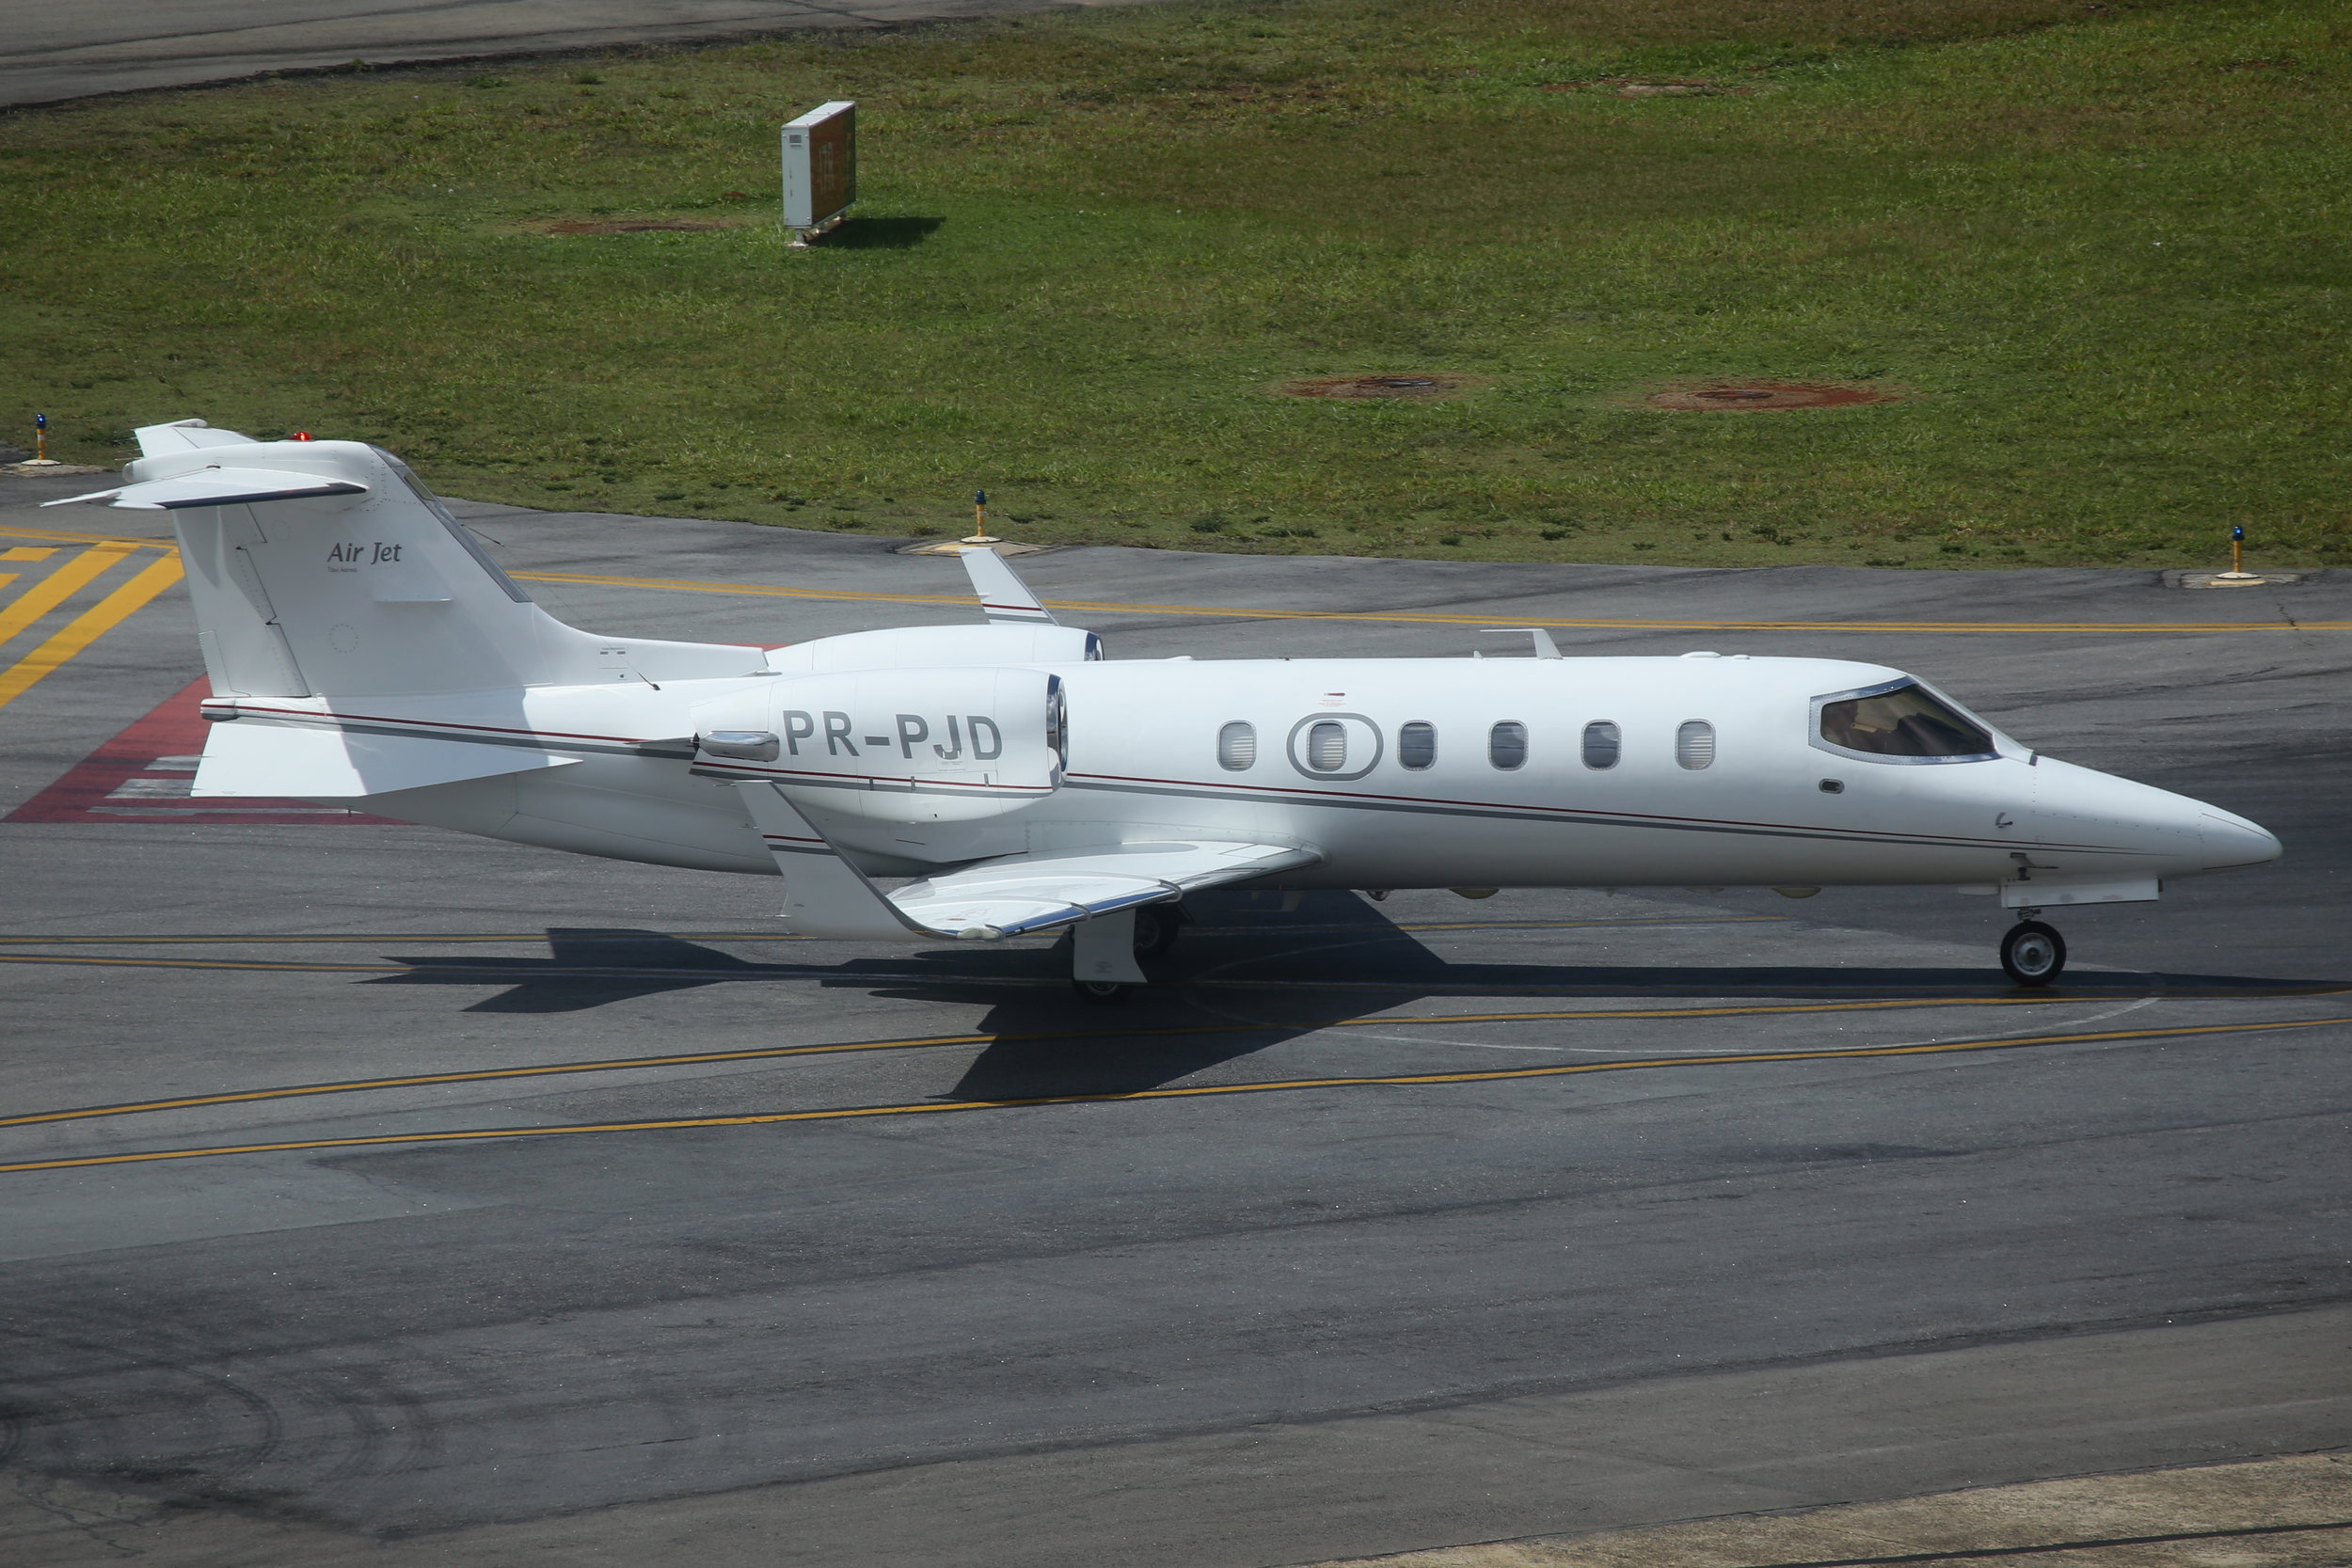 PR-PJD Learjet 31A taken from the Slaveiro Slim hotel at Sao Paulo Congonhas Airport 29th April 2019 by John Wood